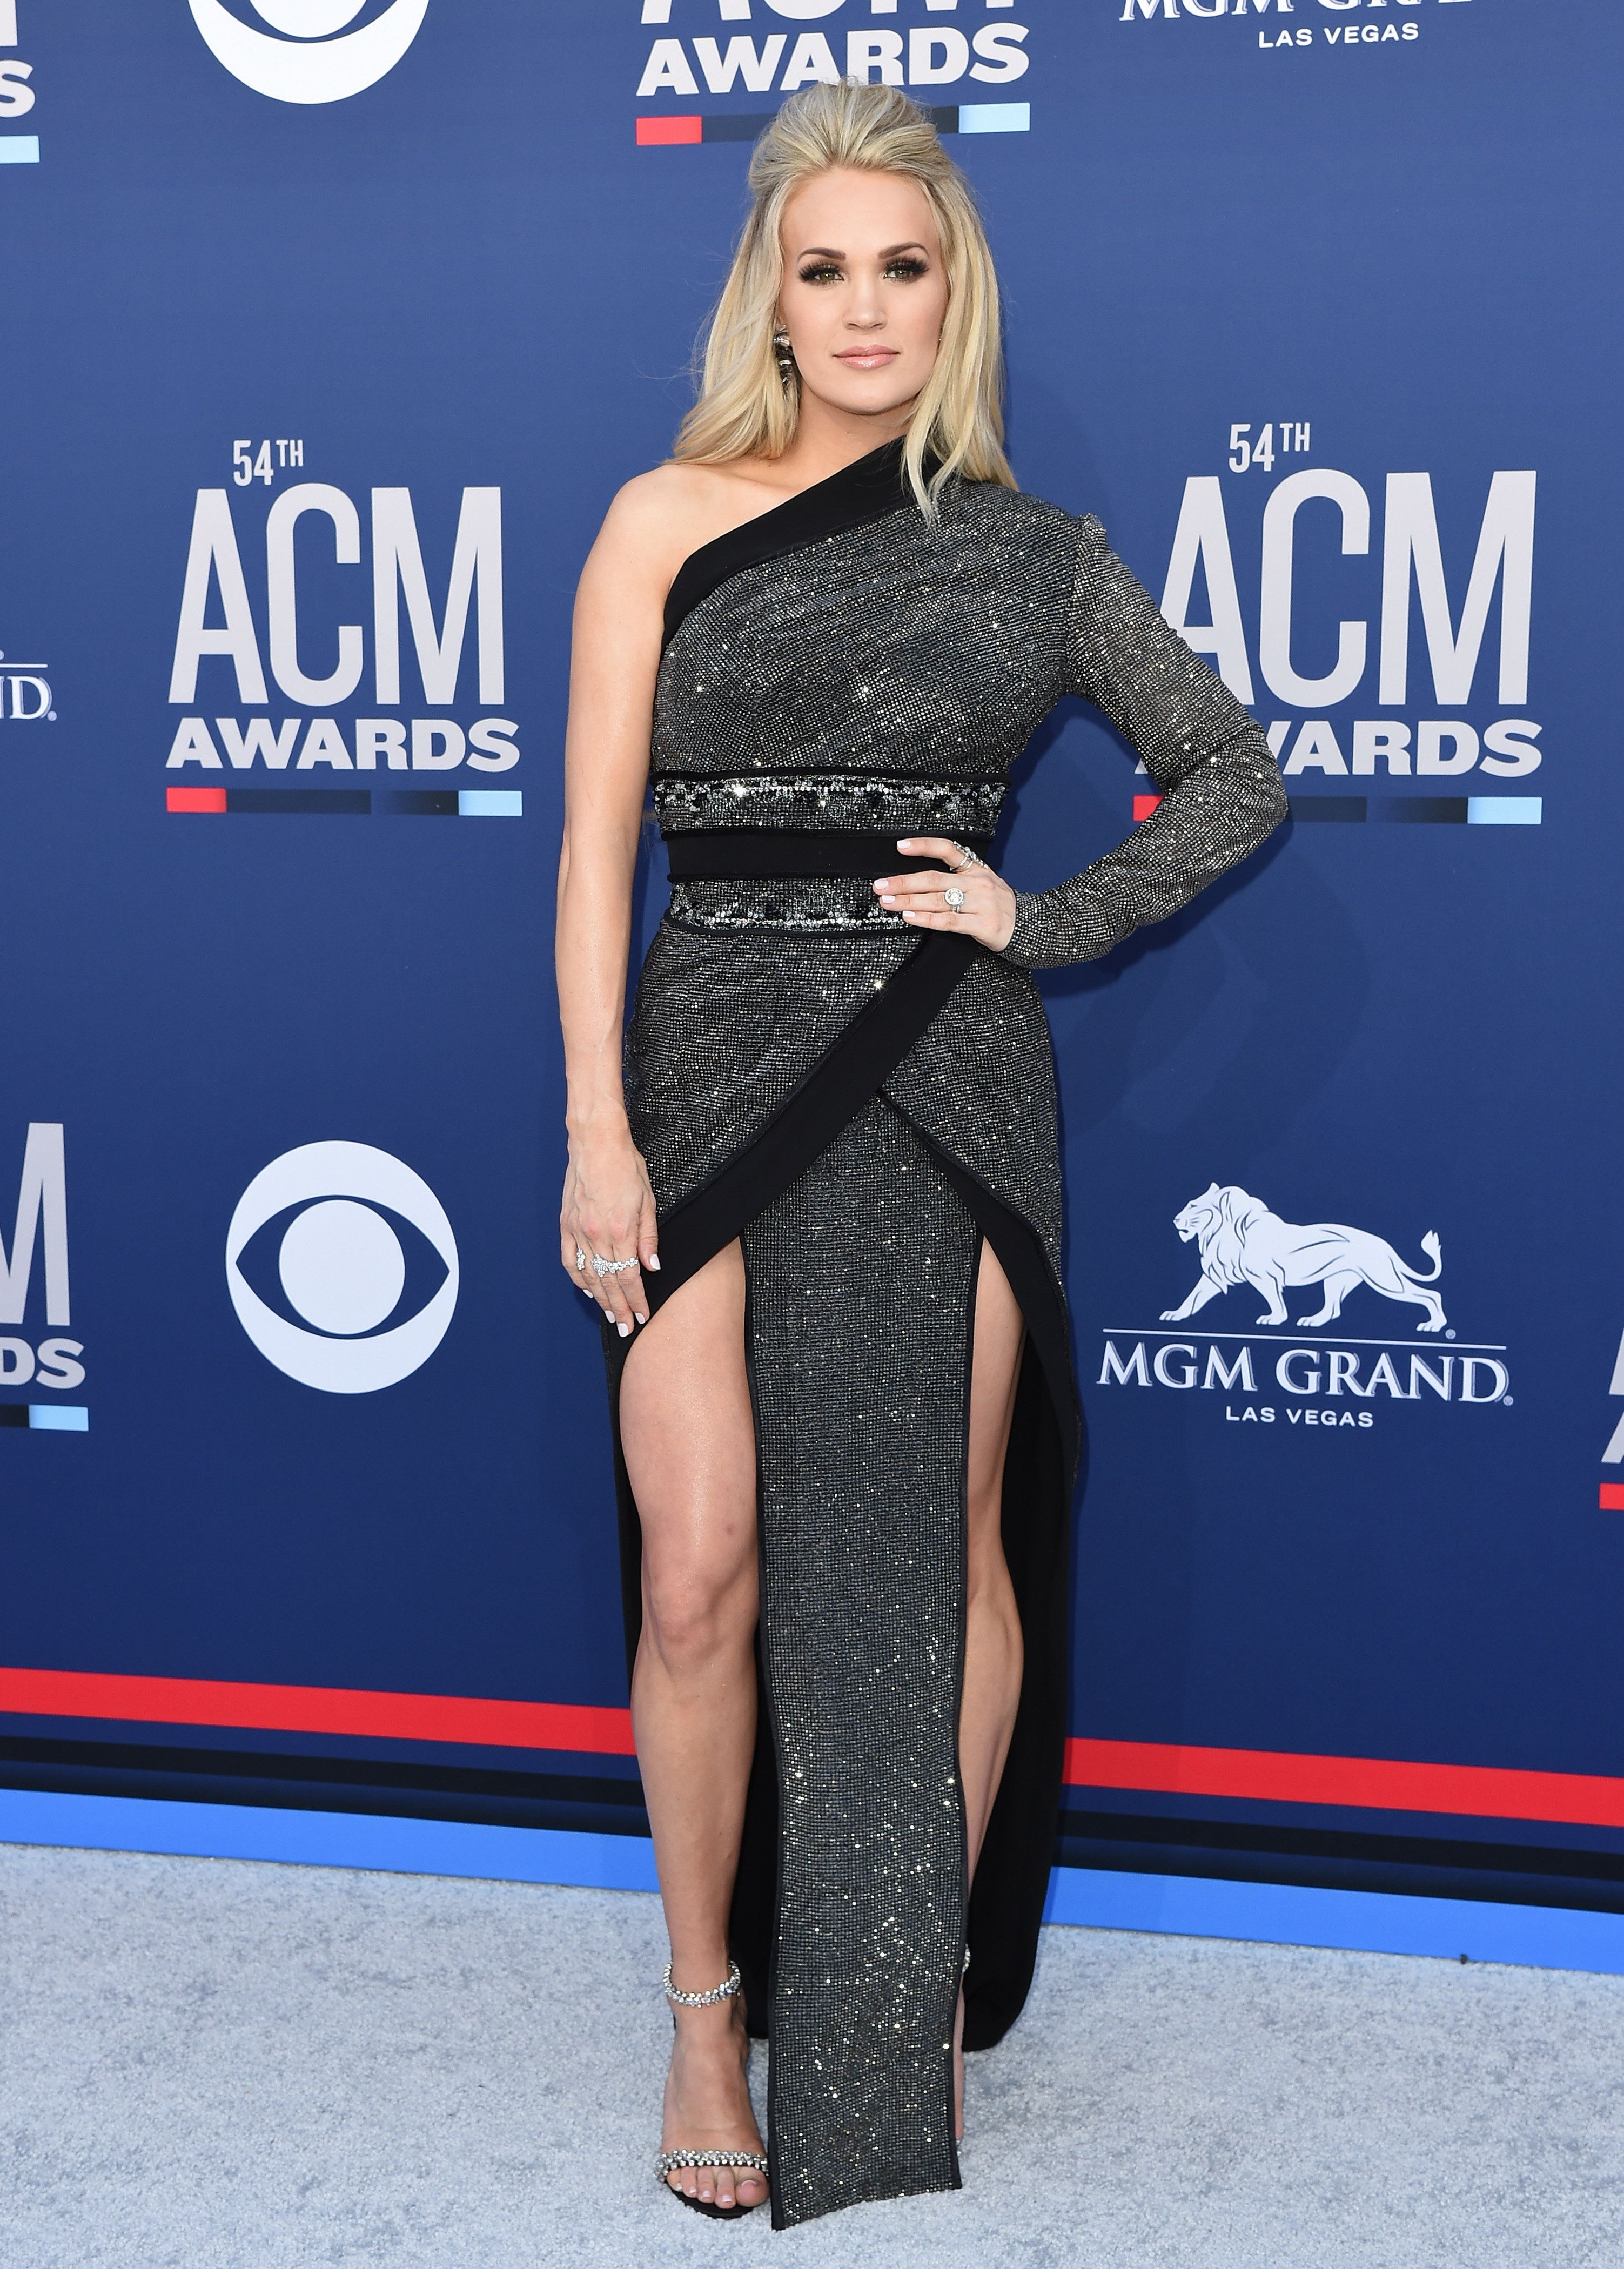 LAS VEGAS, NEVADA - APRIL 07: Carrie Underwood attends the 54th Academy of Country Music Awards at MGM Grand Garden Arena on April 07, 2019 in Las Vegas, Nevada. (Photo by Axelle/Bauer-Griffin/FilmMagic)